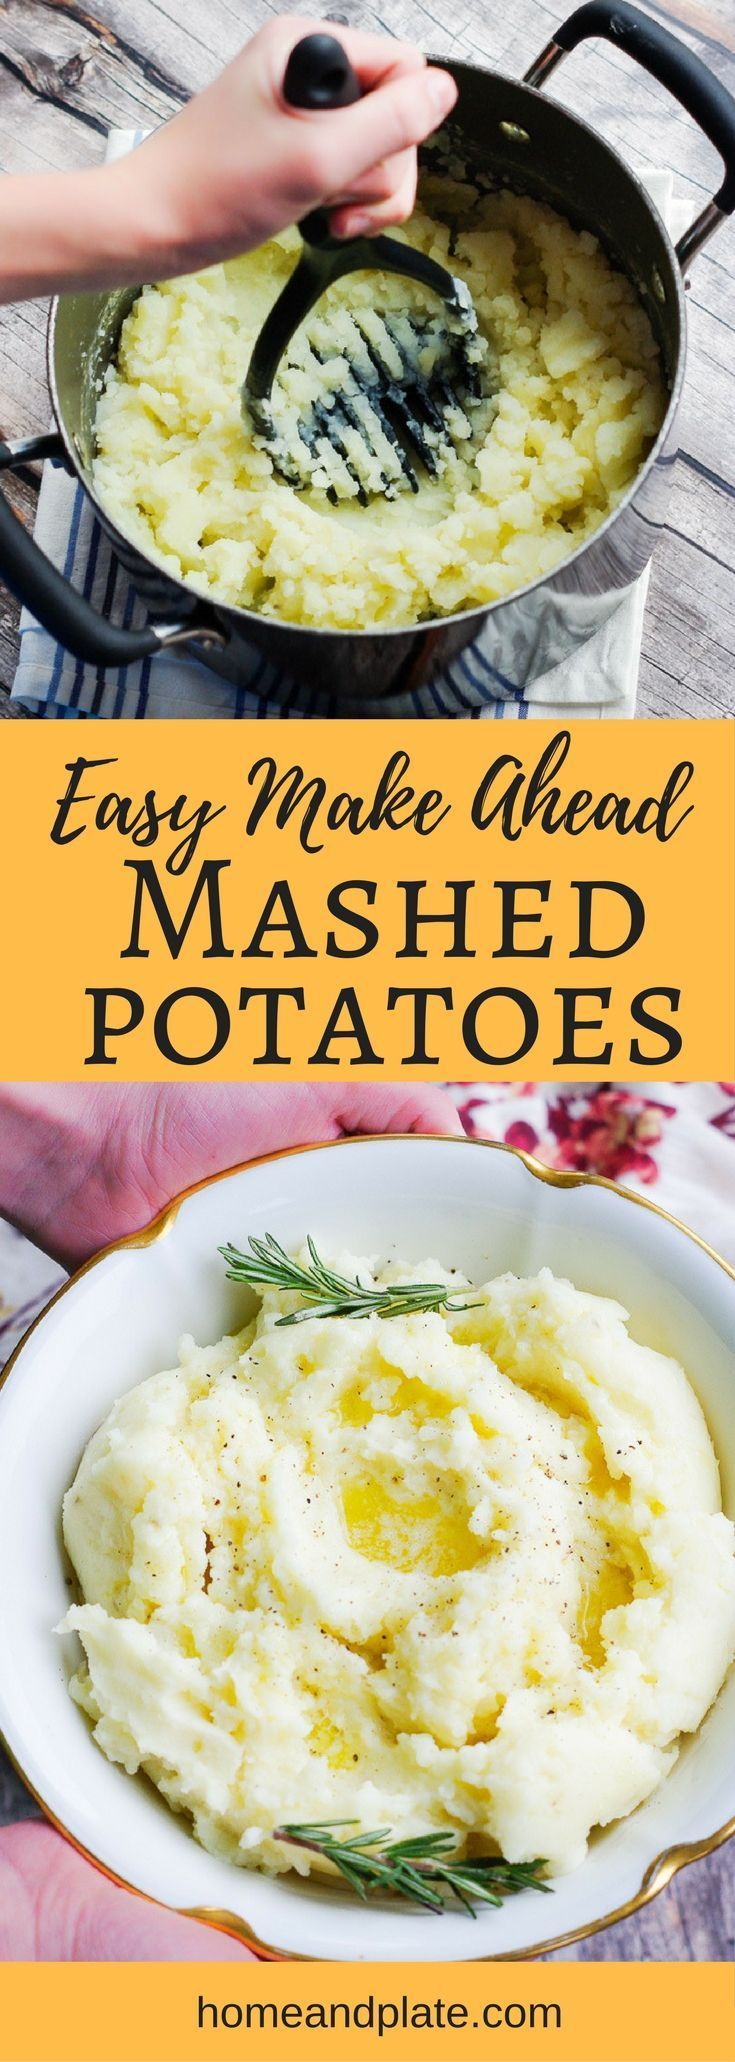 Easy Make-Ahead Mashed Potatoes #thanksgivingrecipes